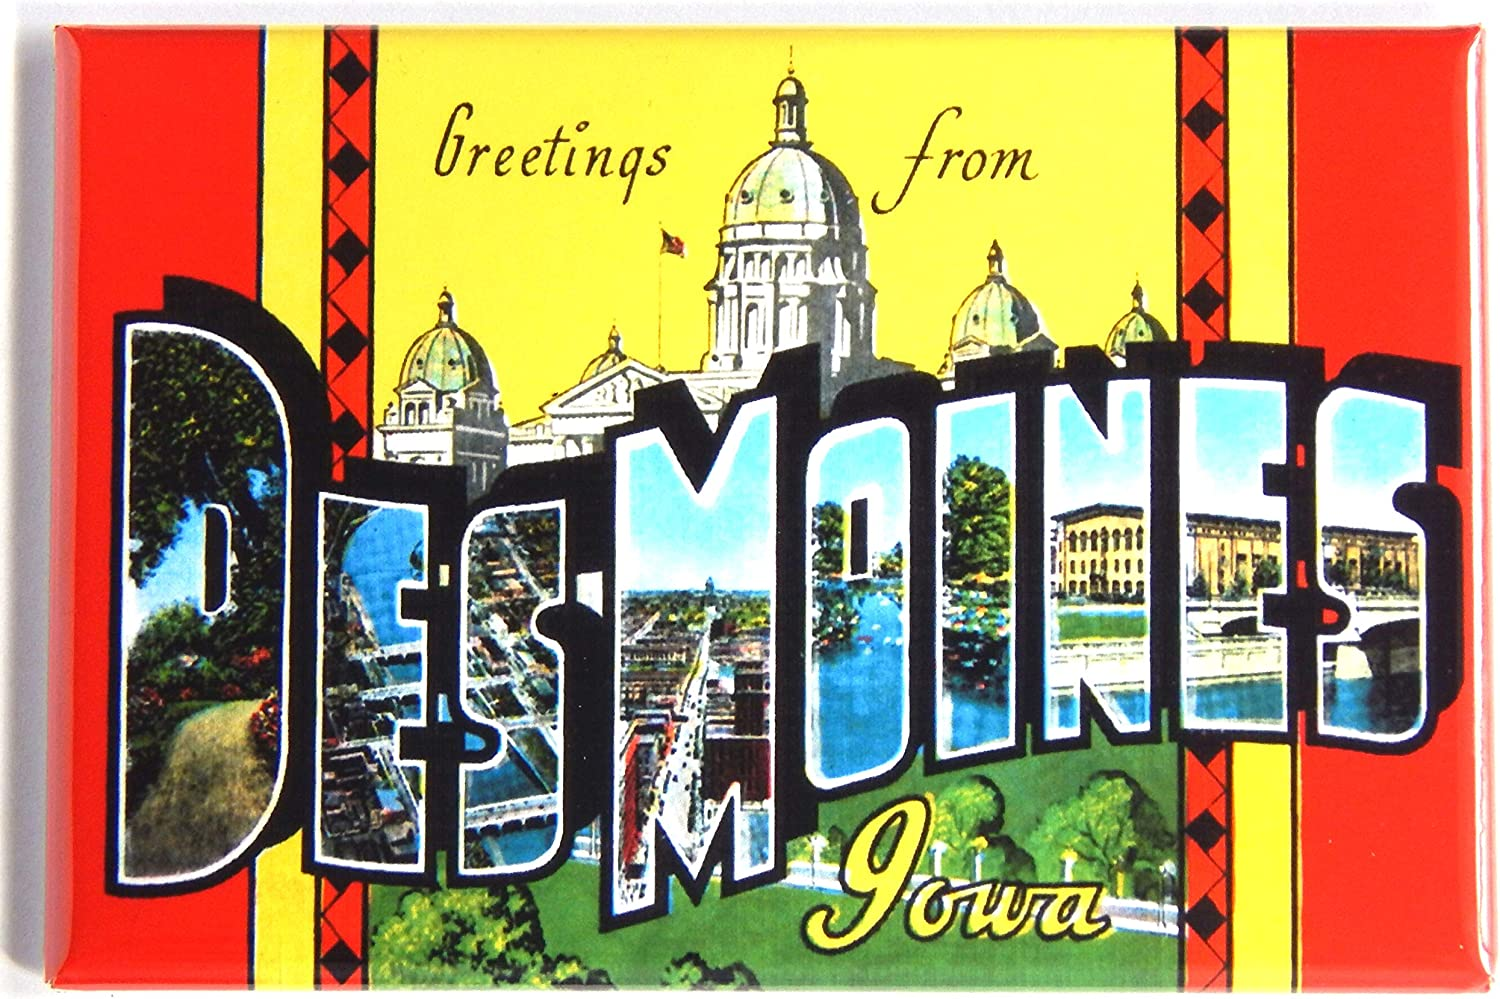 Greetings from Des Moines Iowa Fridge Magnet (2 x 3 inches) style B